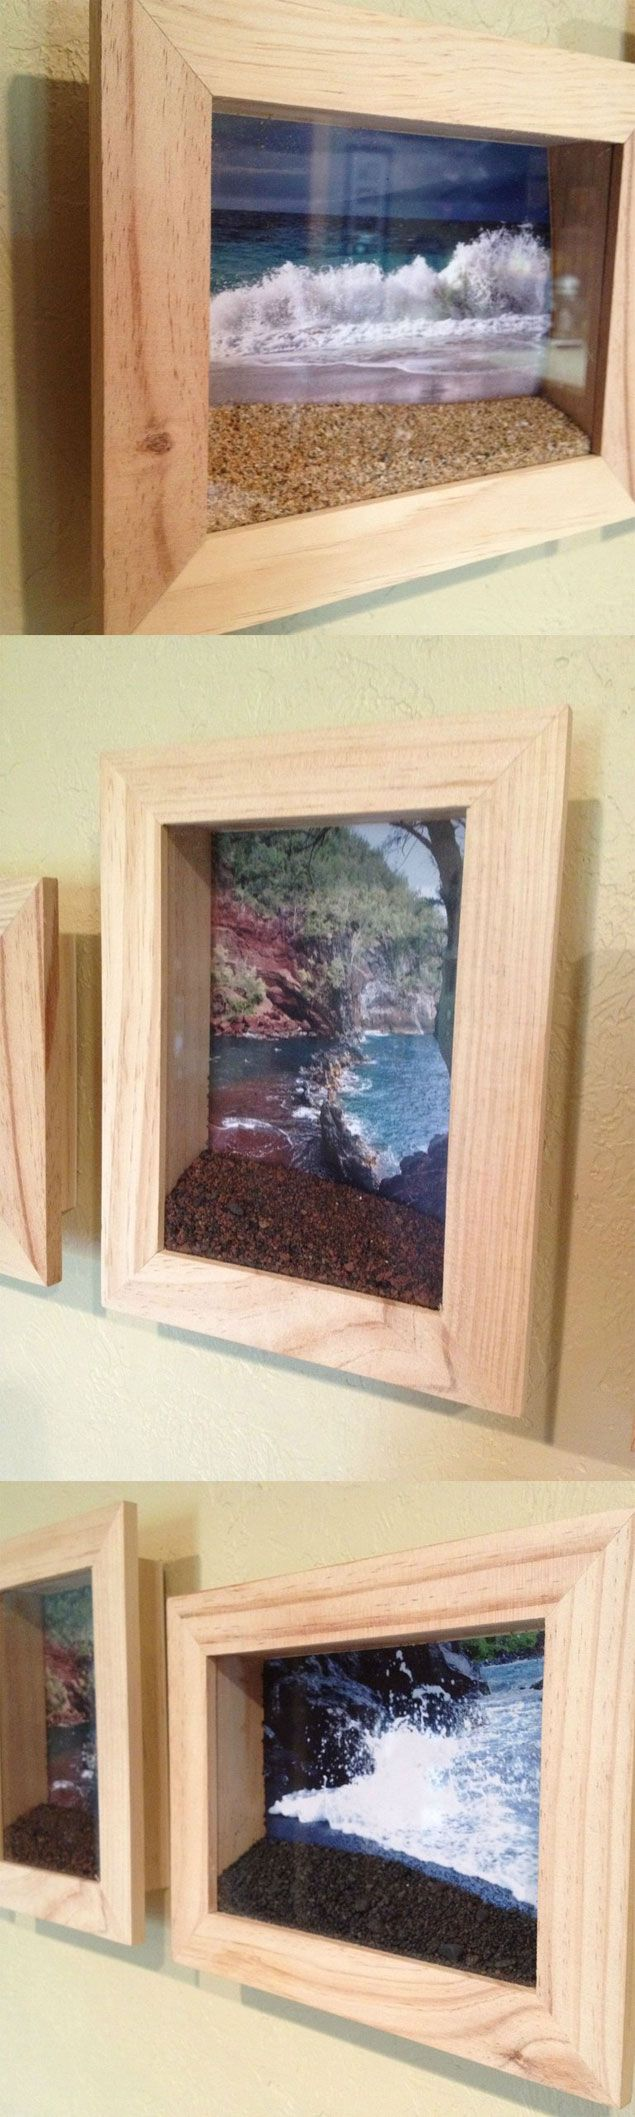 Put a picture of the beach you visited in a shadow box frame and fill the bottom with sand from that beach. I'm gonna need to try this!